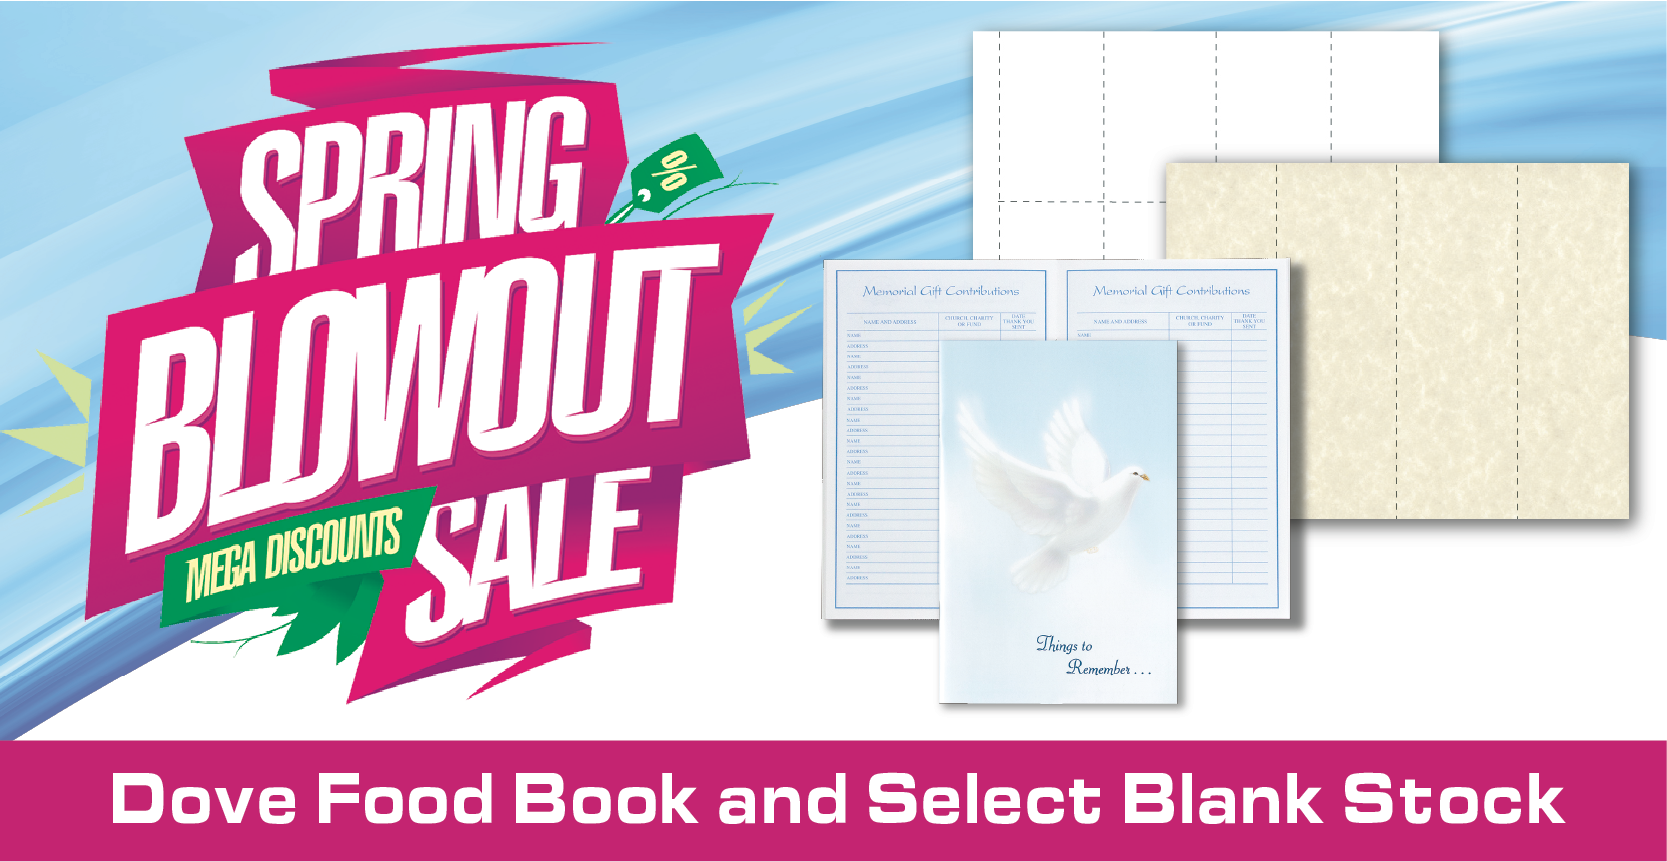 Srping 2021 Blowout Sale